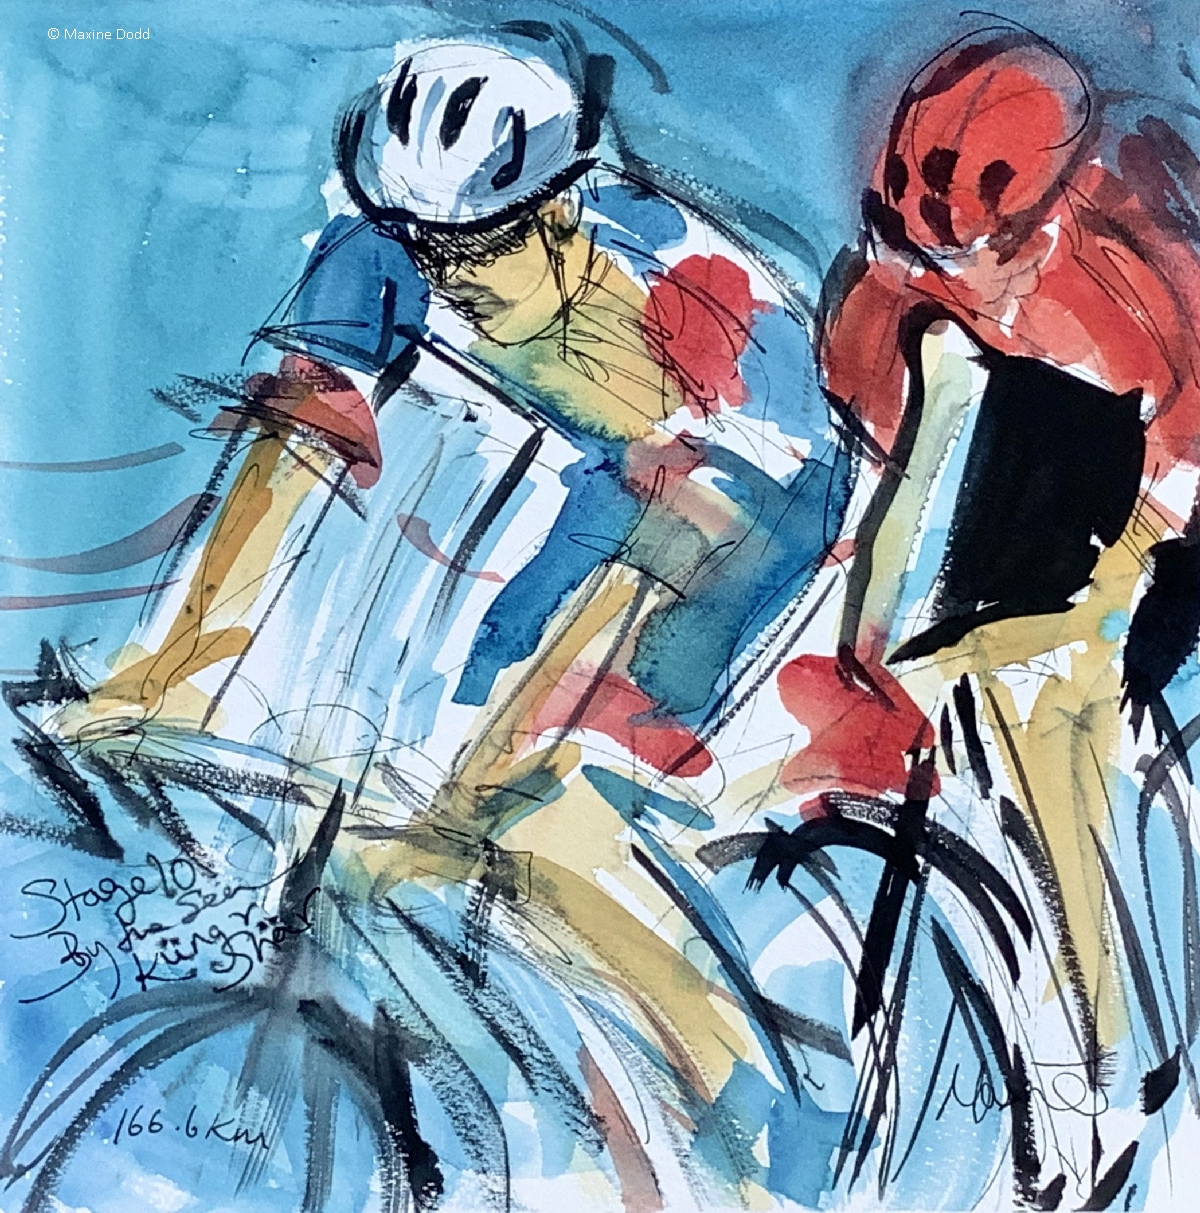 Swiss breakaway, 166.6KM, watercolour, pen and ink with gouache, by Maxine Dodd